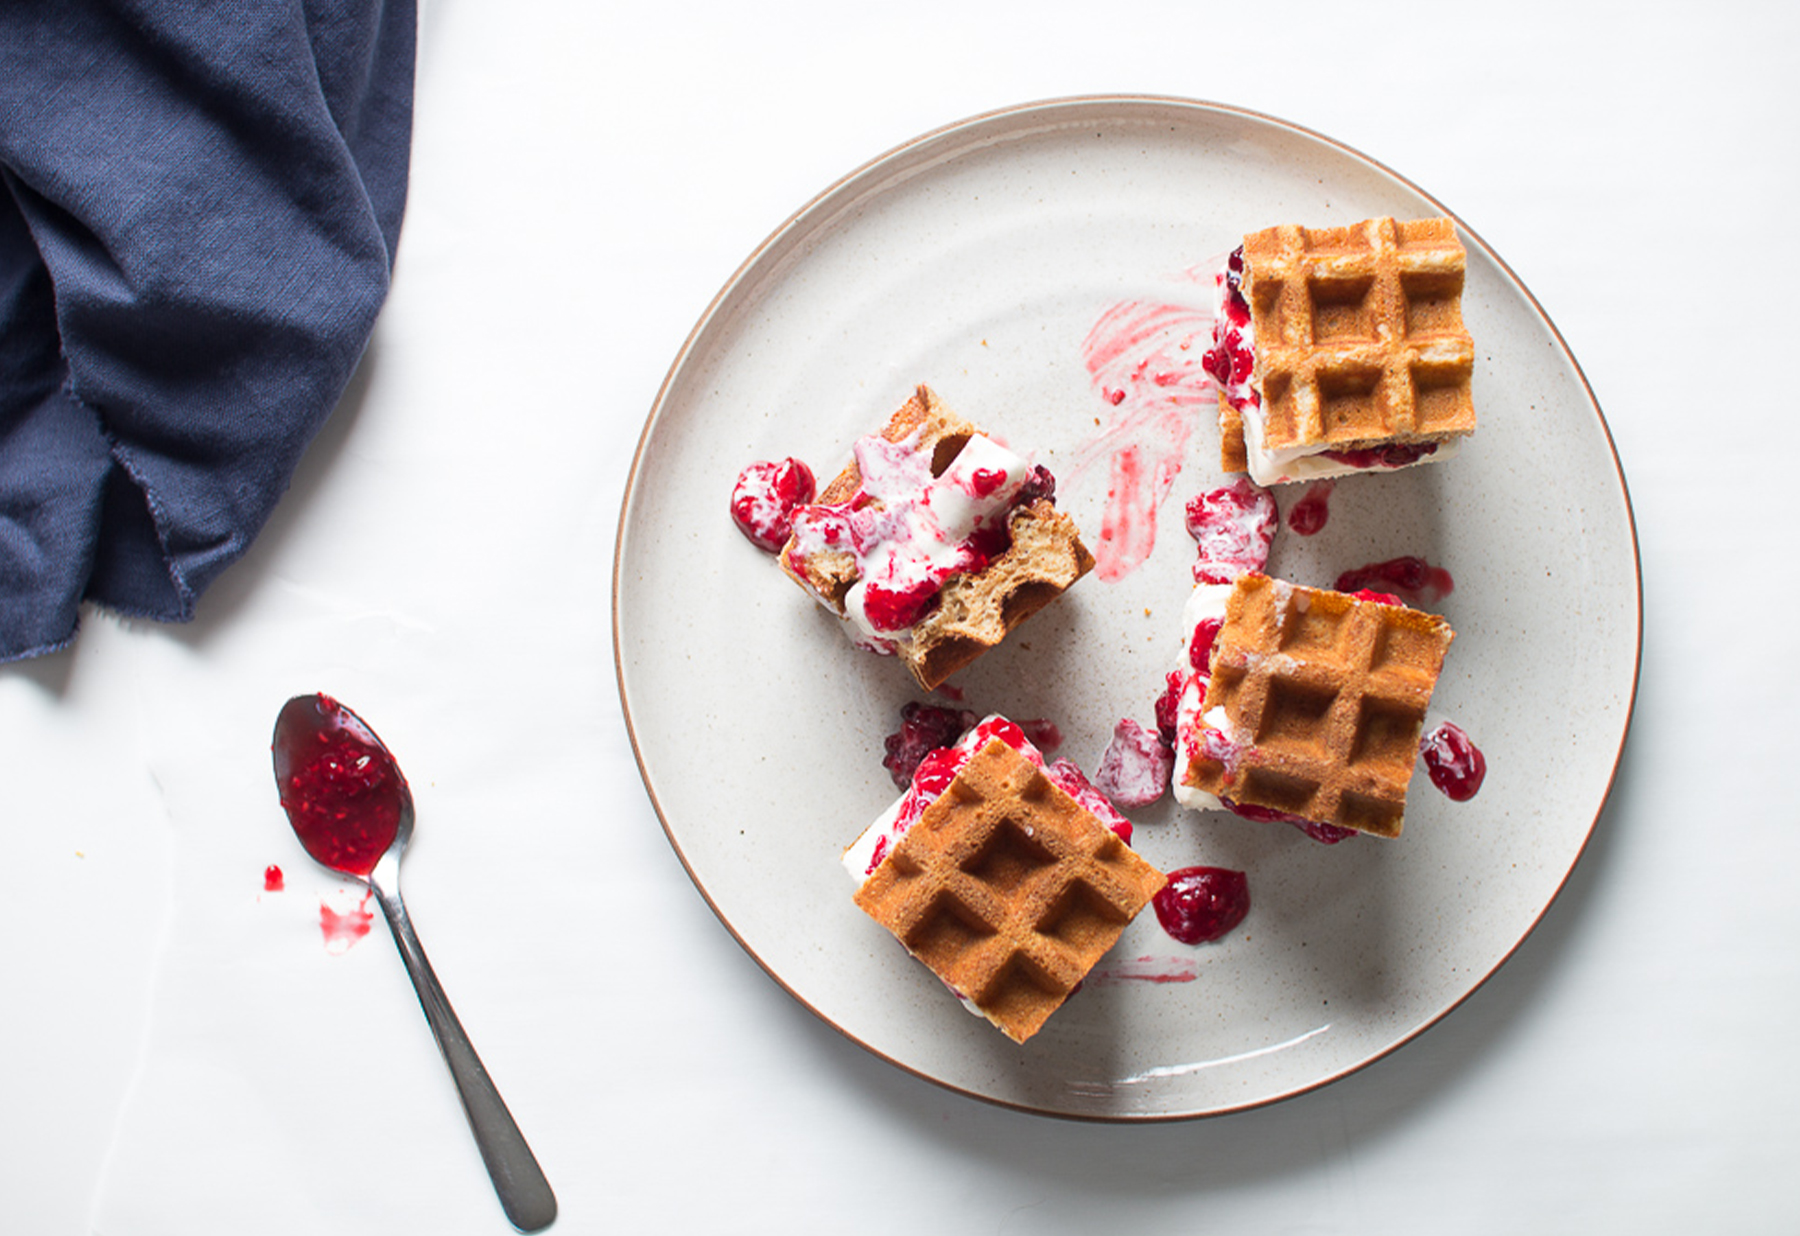 Waffle maker recipes 25 things better than just waffles greatist forumfinder Images